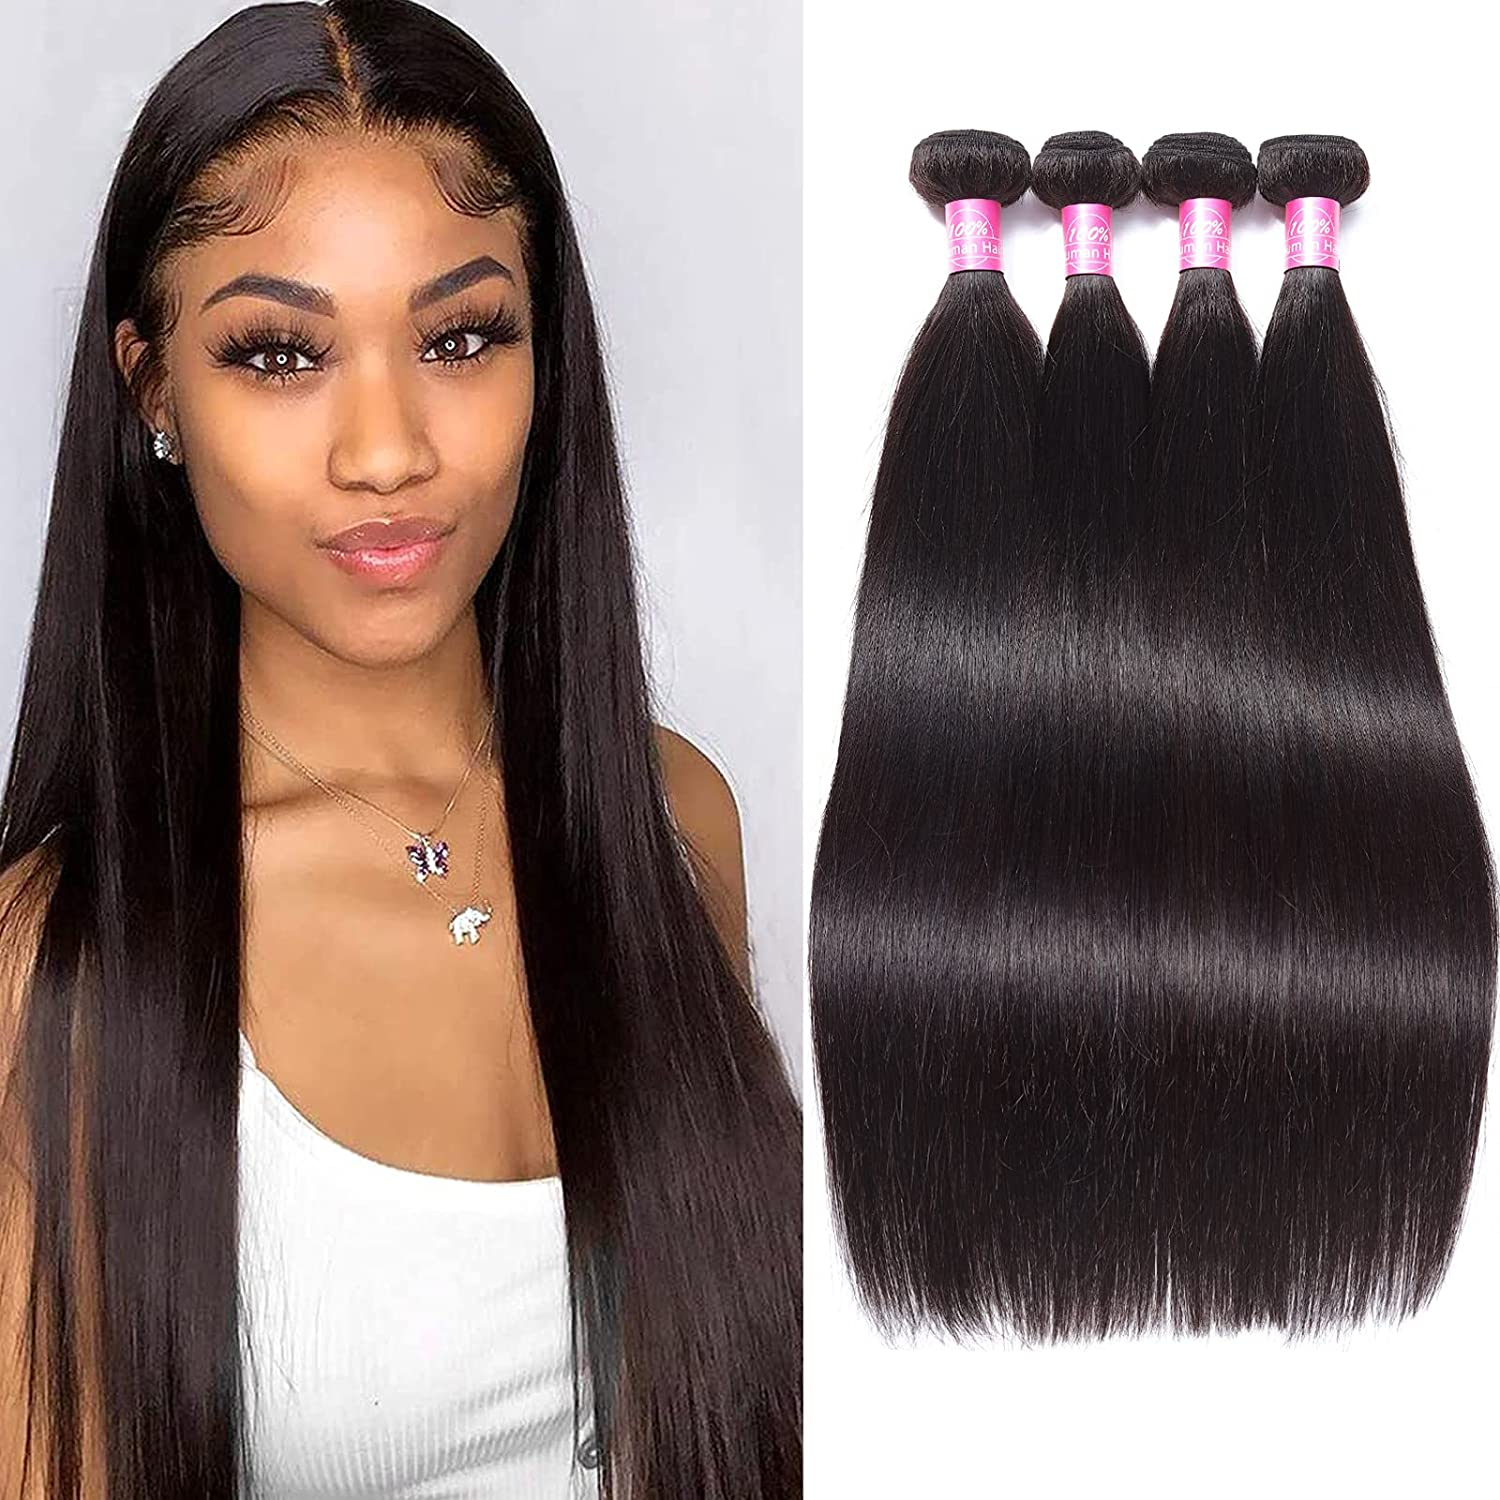 """New color 8A Remy Brazilian Virgin Hair Straight 22"""" 26"""" 24"""" 20"""" Free shipping on posting reviews Mink Huma"""